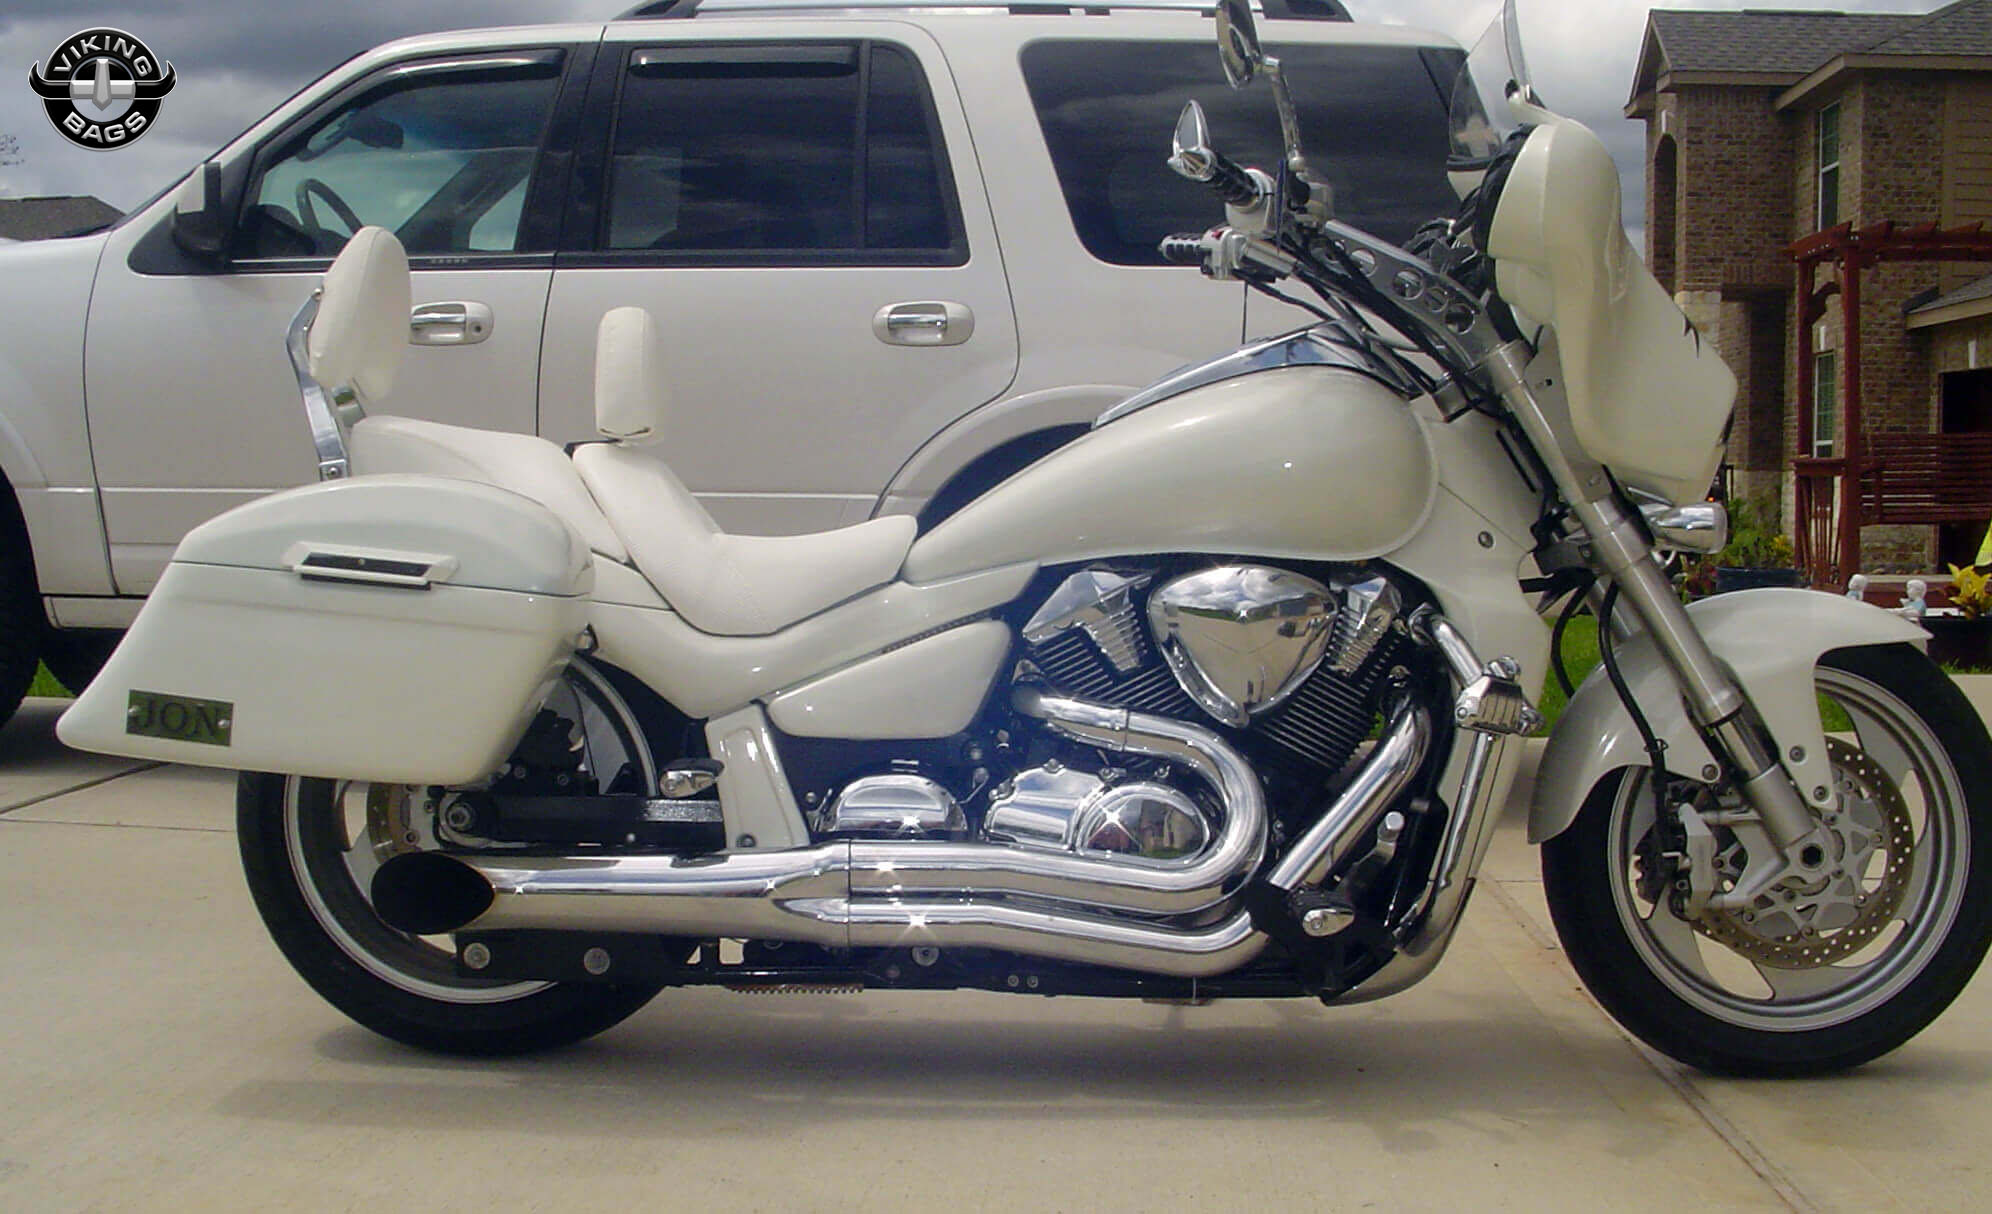 Suzuki Boulevard Saddlebags. Shop Bags for Suzuki Boulevard